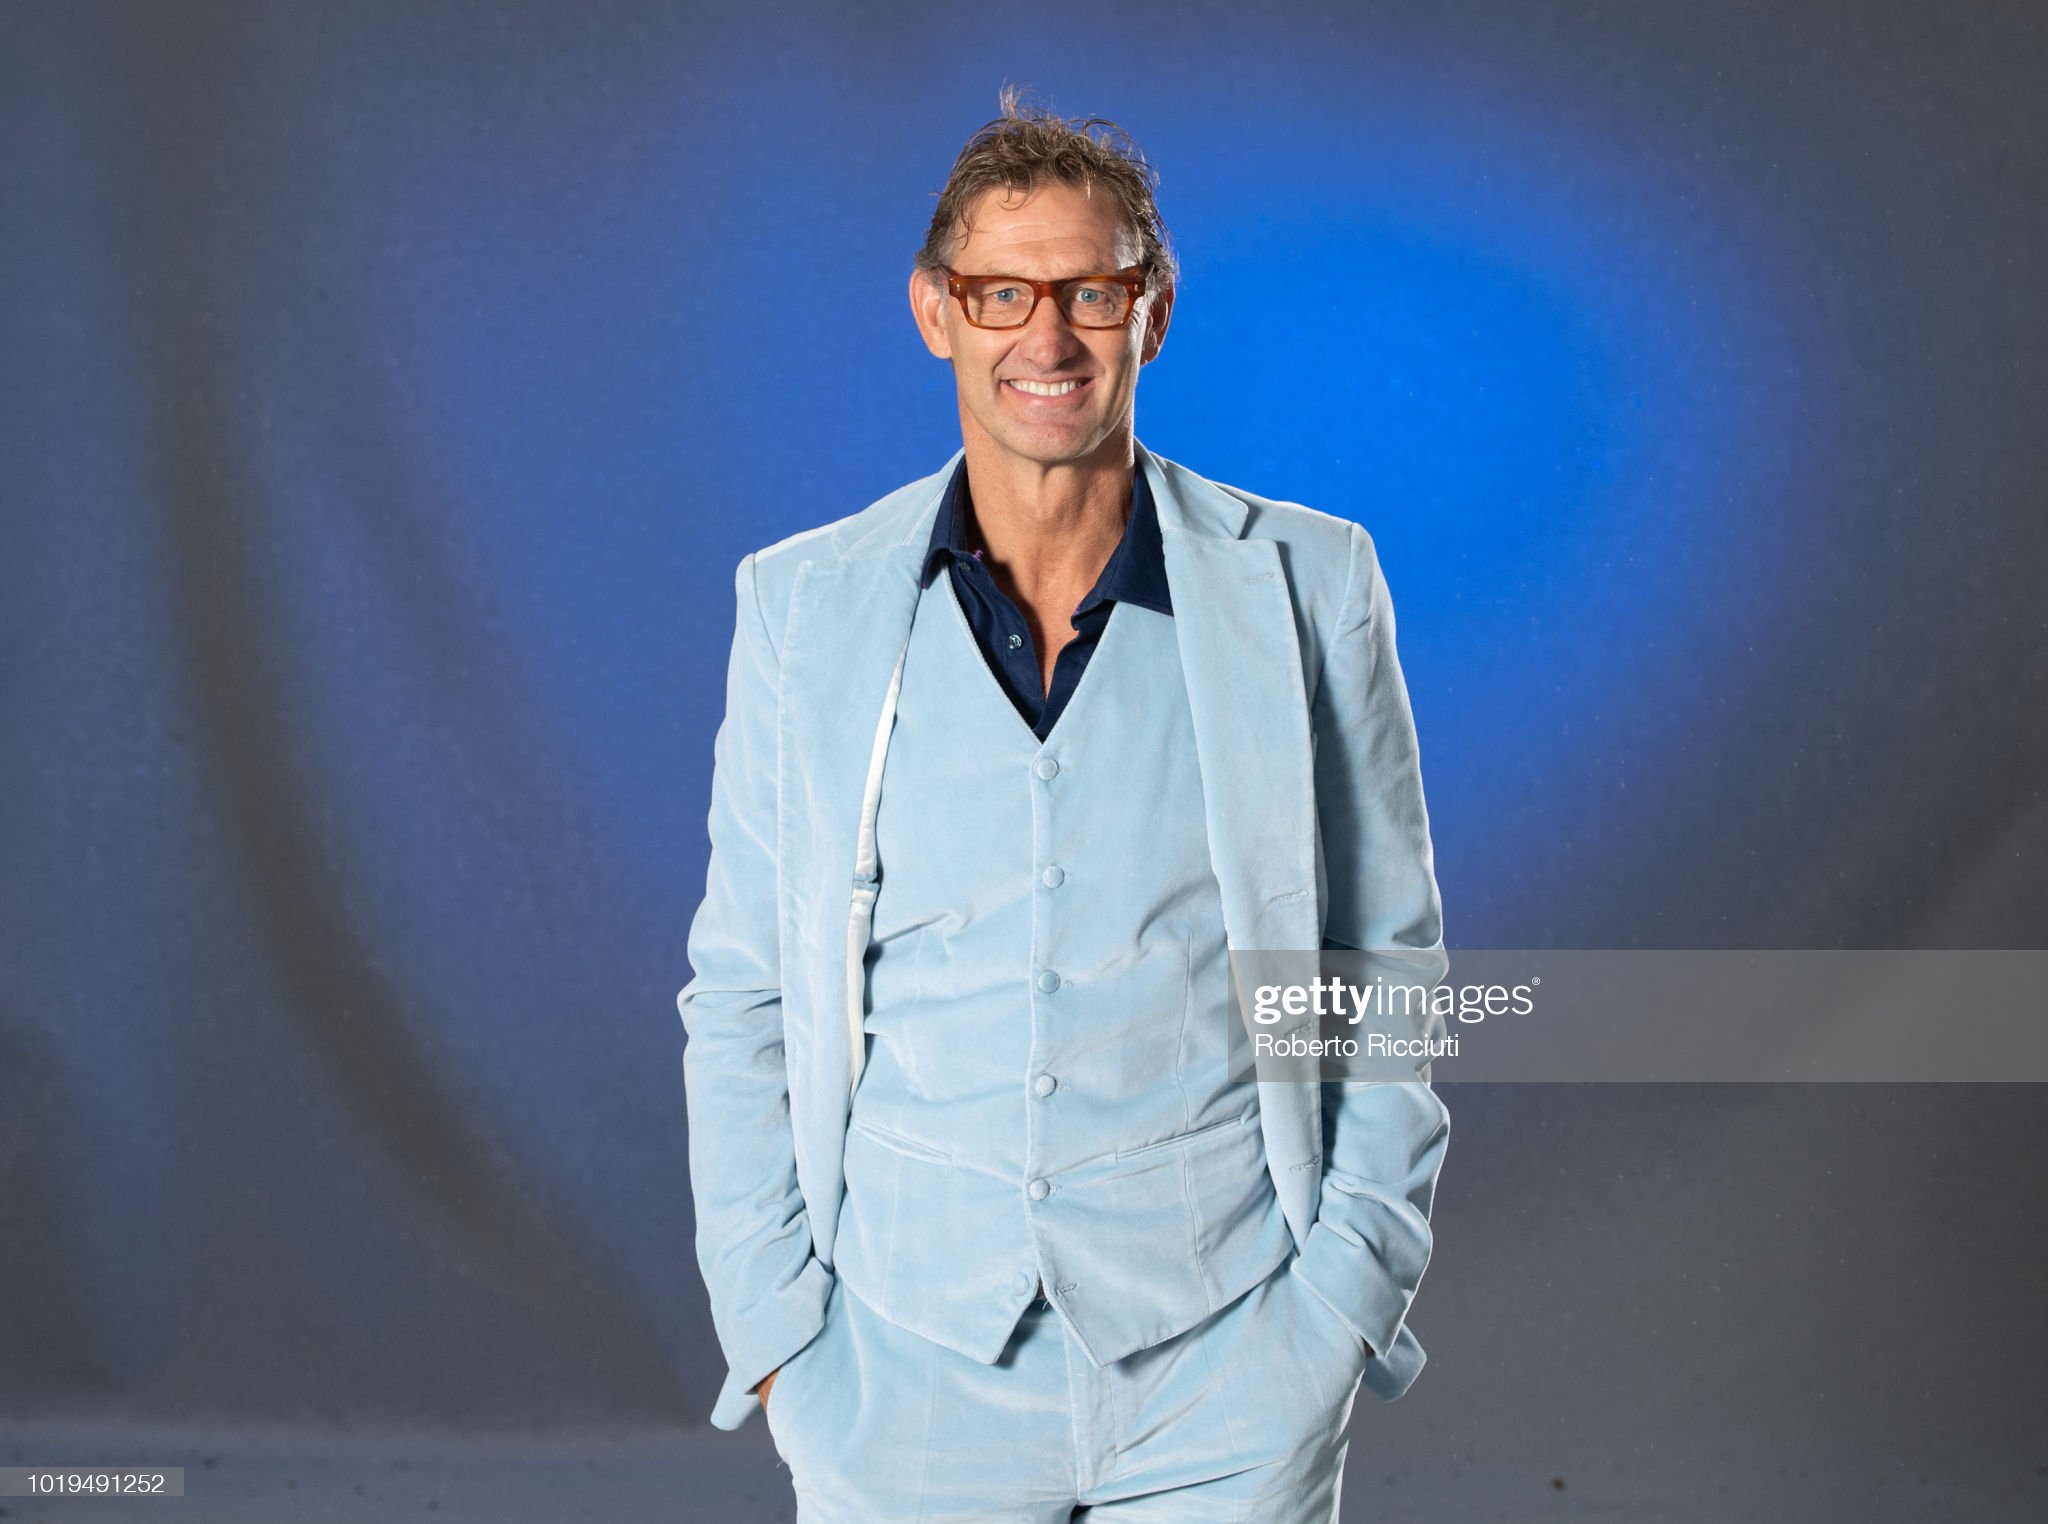 https://media.gettyimages.com/photos/english-football-manager-and-former-player-tony-adams-attends-a-the-picture-id1019491252?s=2048x2048